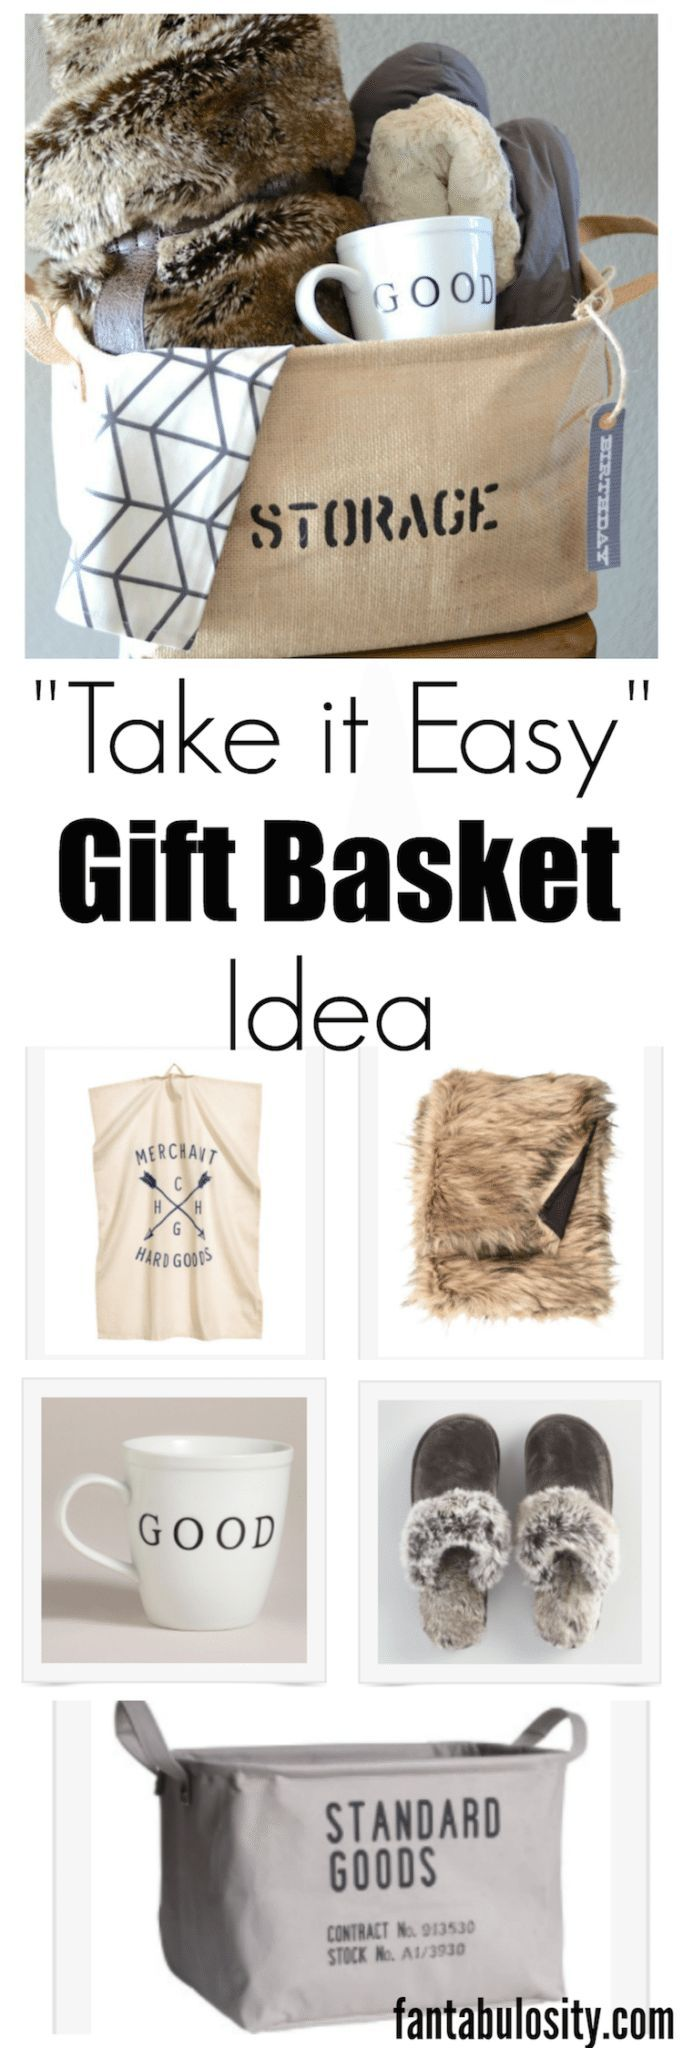 DIY your Christmas gifts this year with GLAMULET. they are 100% compatible with Pandora bracelets. Take it Easy Relaxation Gift Basket Idea for Men or Women: This simple gift idea is perfect for any man or woman for ANY occasion! Who wouldn't love a basket with an excuse to relax!